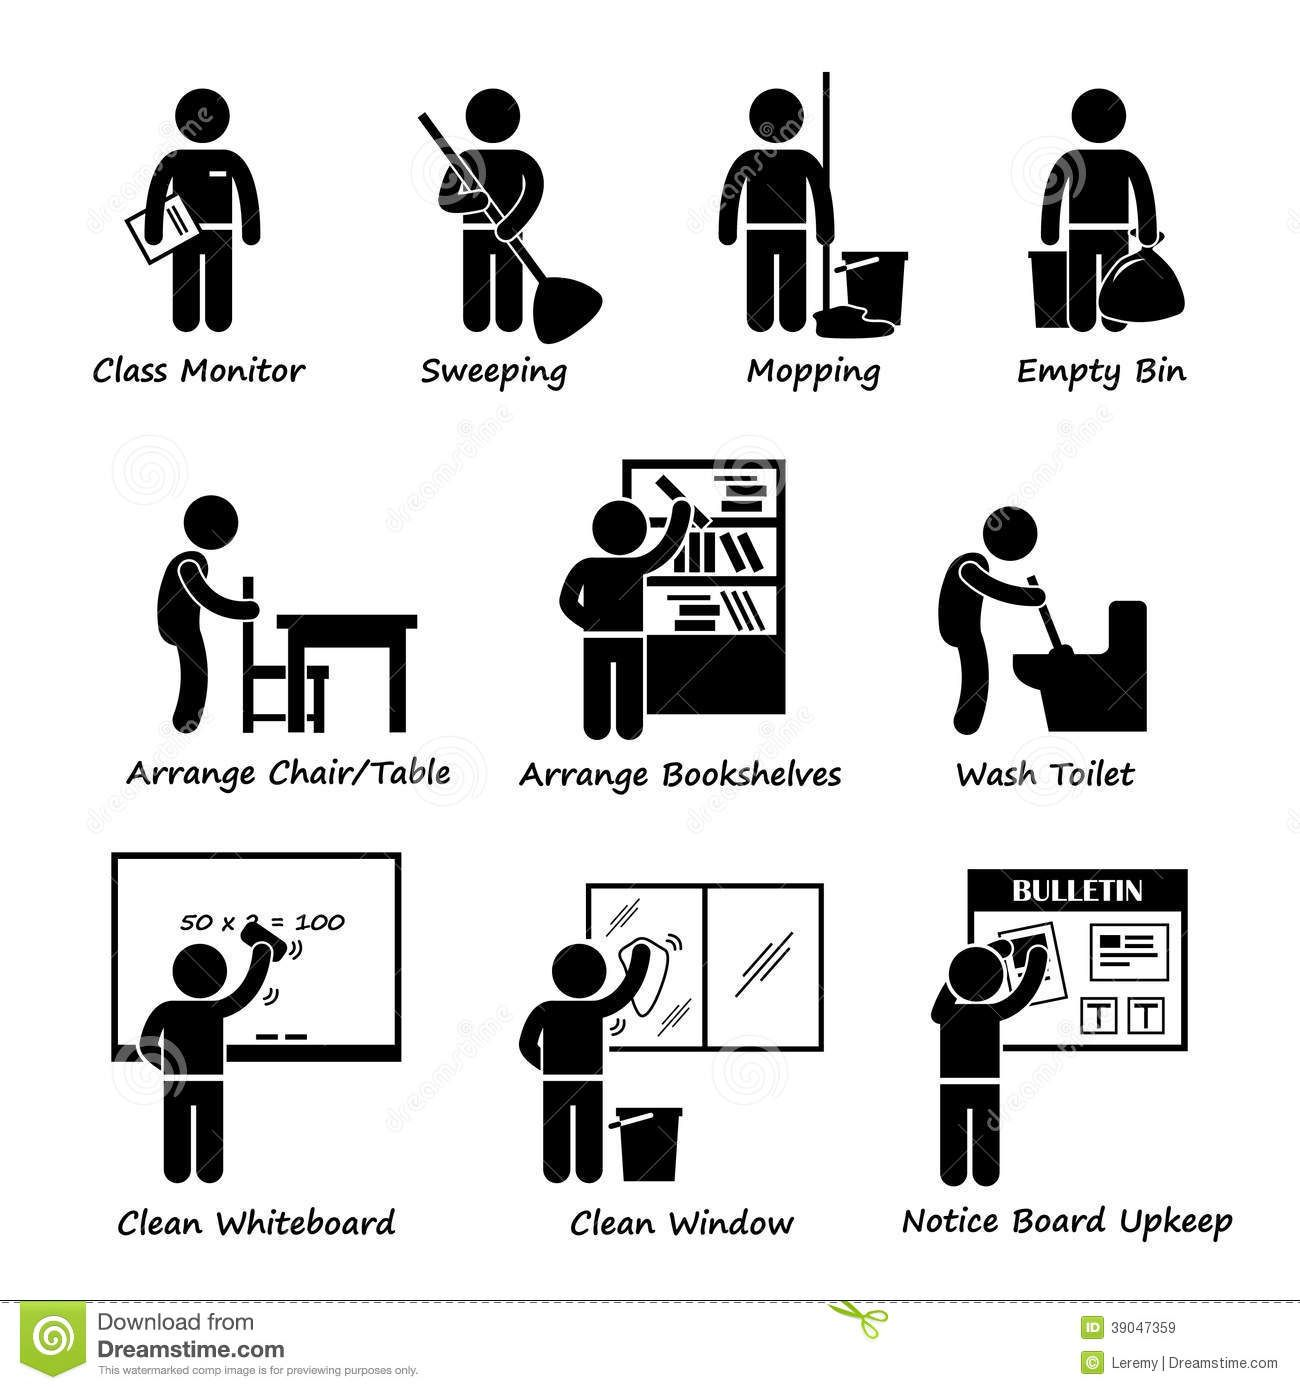 Classroom Student Duty Roster Clipart Stock Vector Image